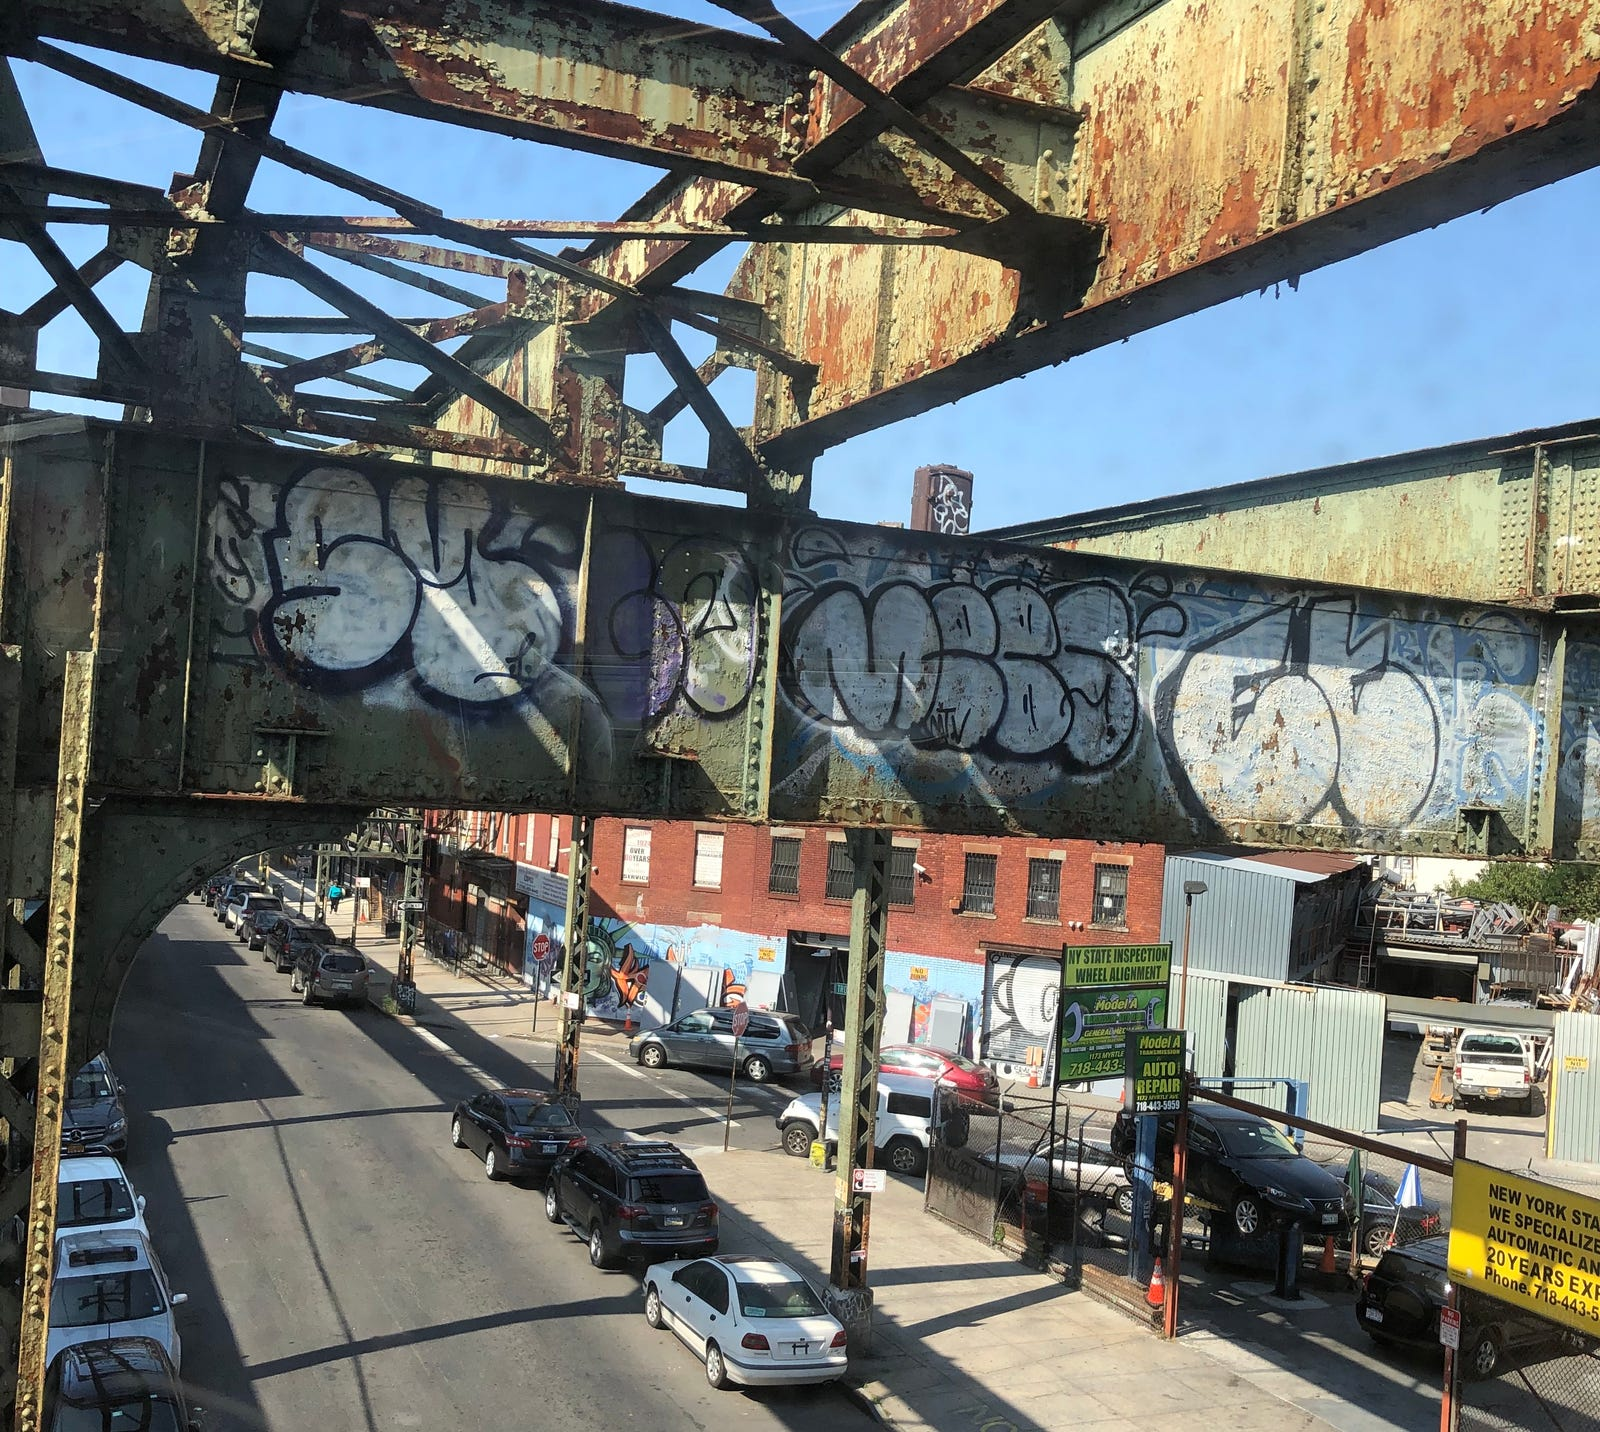 Scenes of the old Myrtle Avenue line's structure as it stands today. Photos by author.